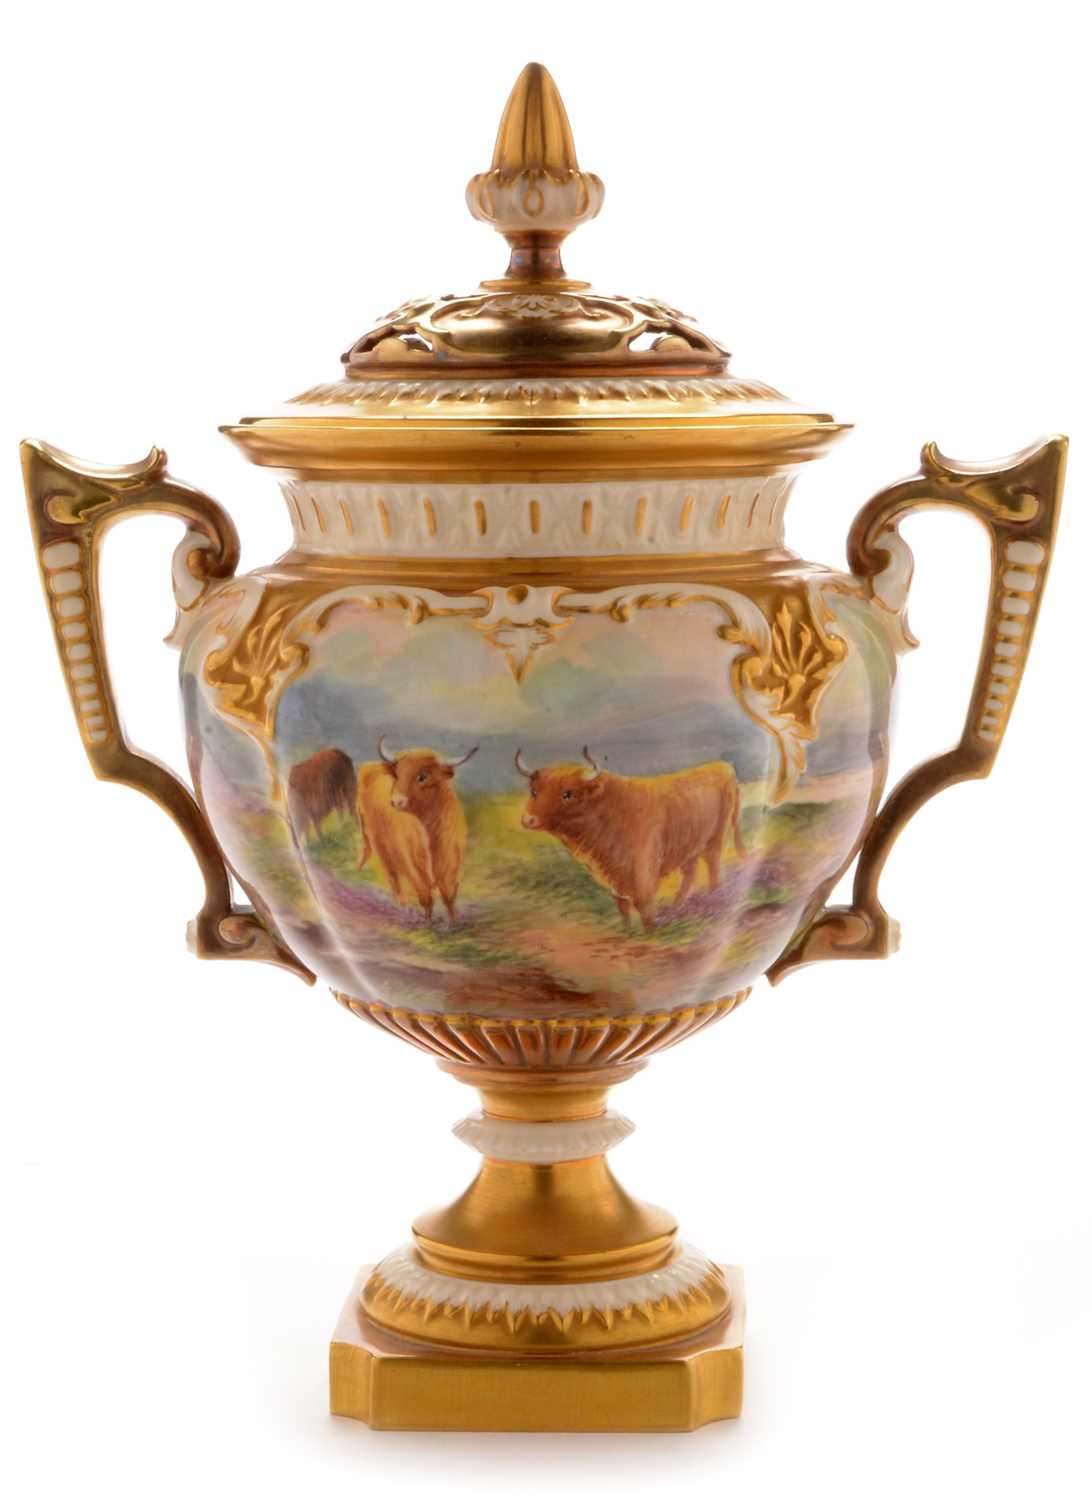 Lot 551-Royal Worcester vase and cover by Townsend